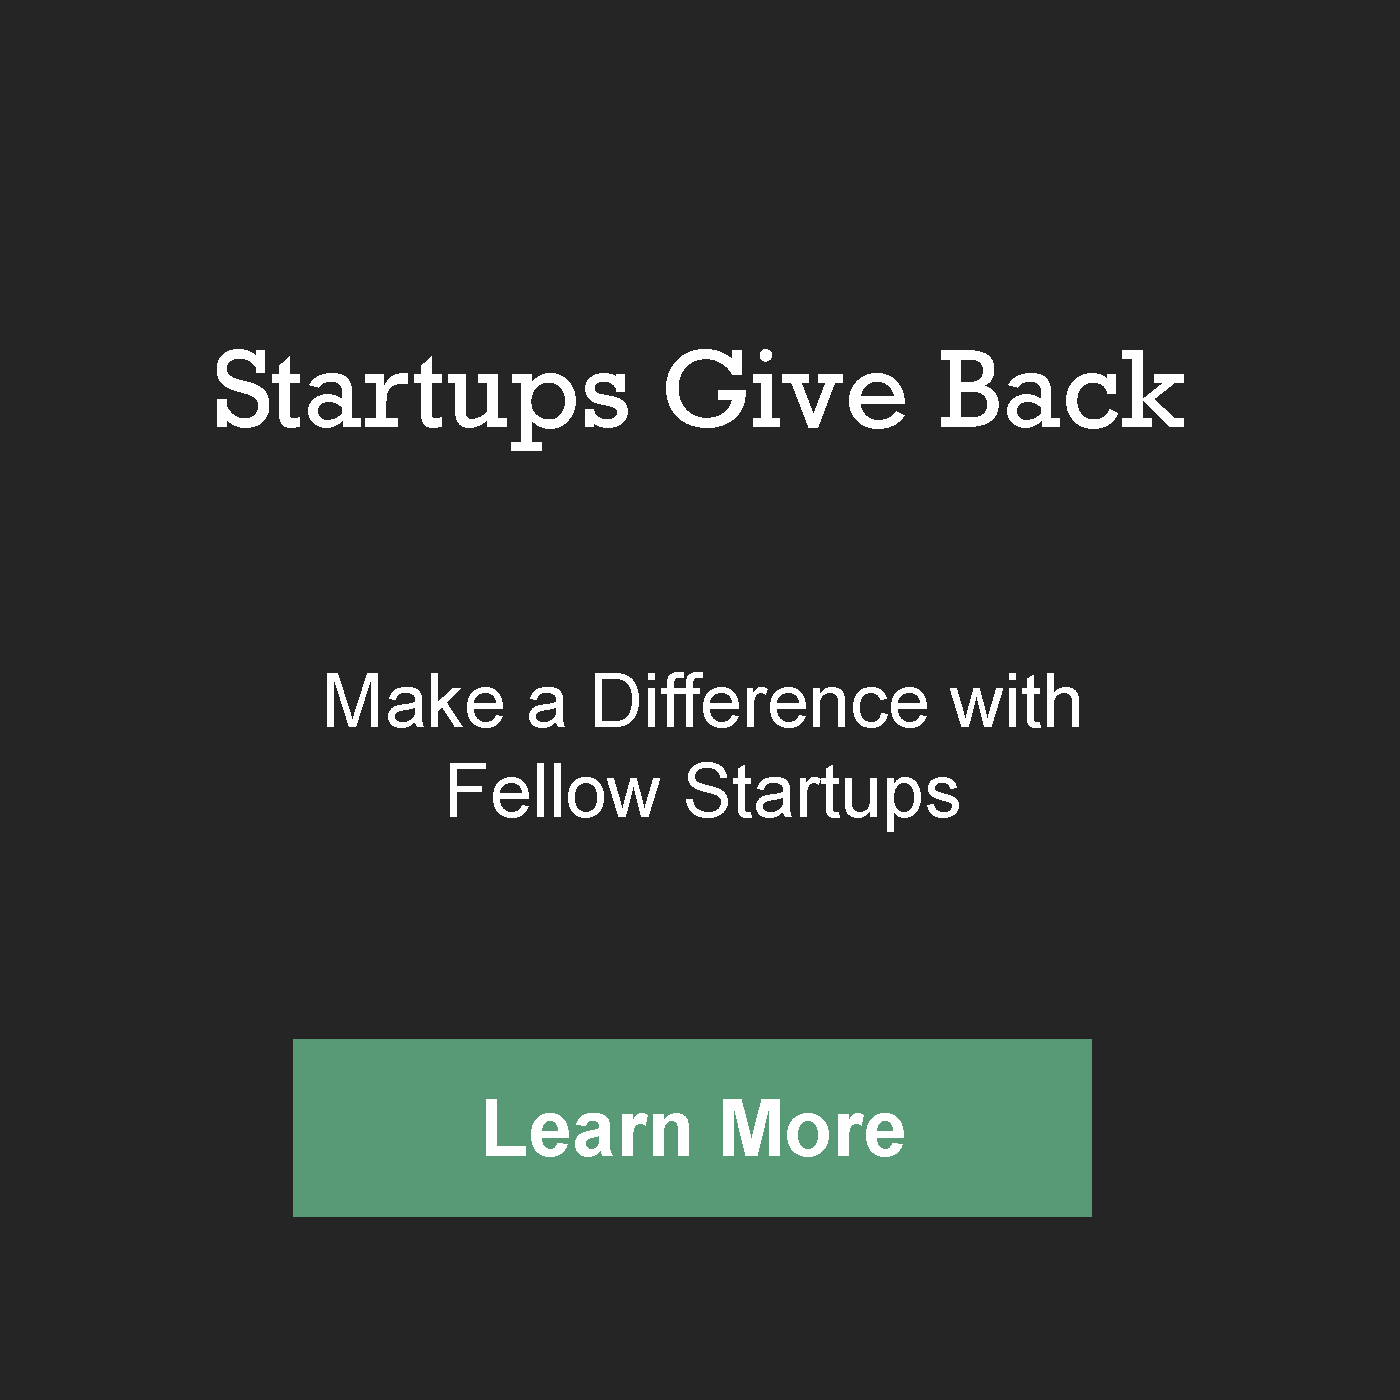 Startups Give Back About